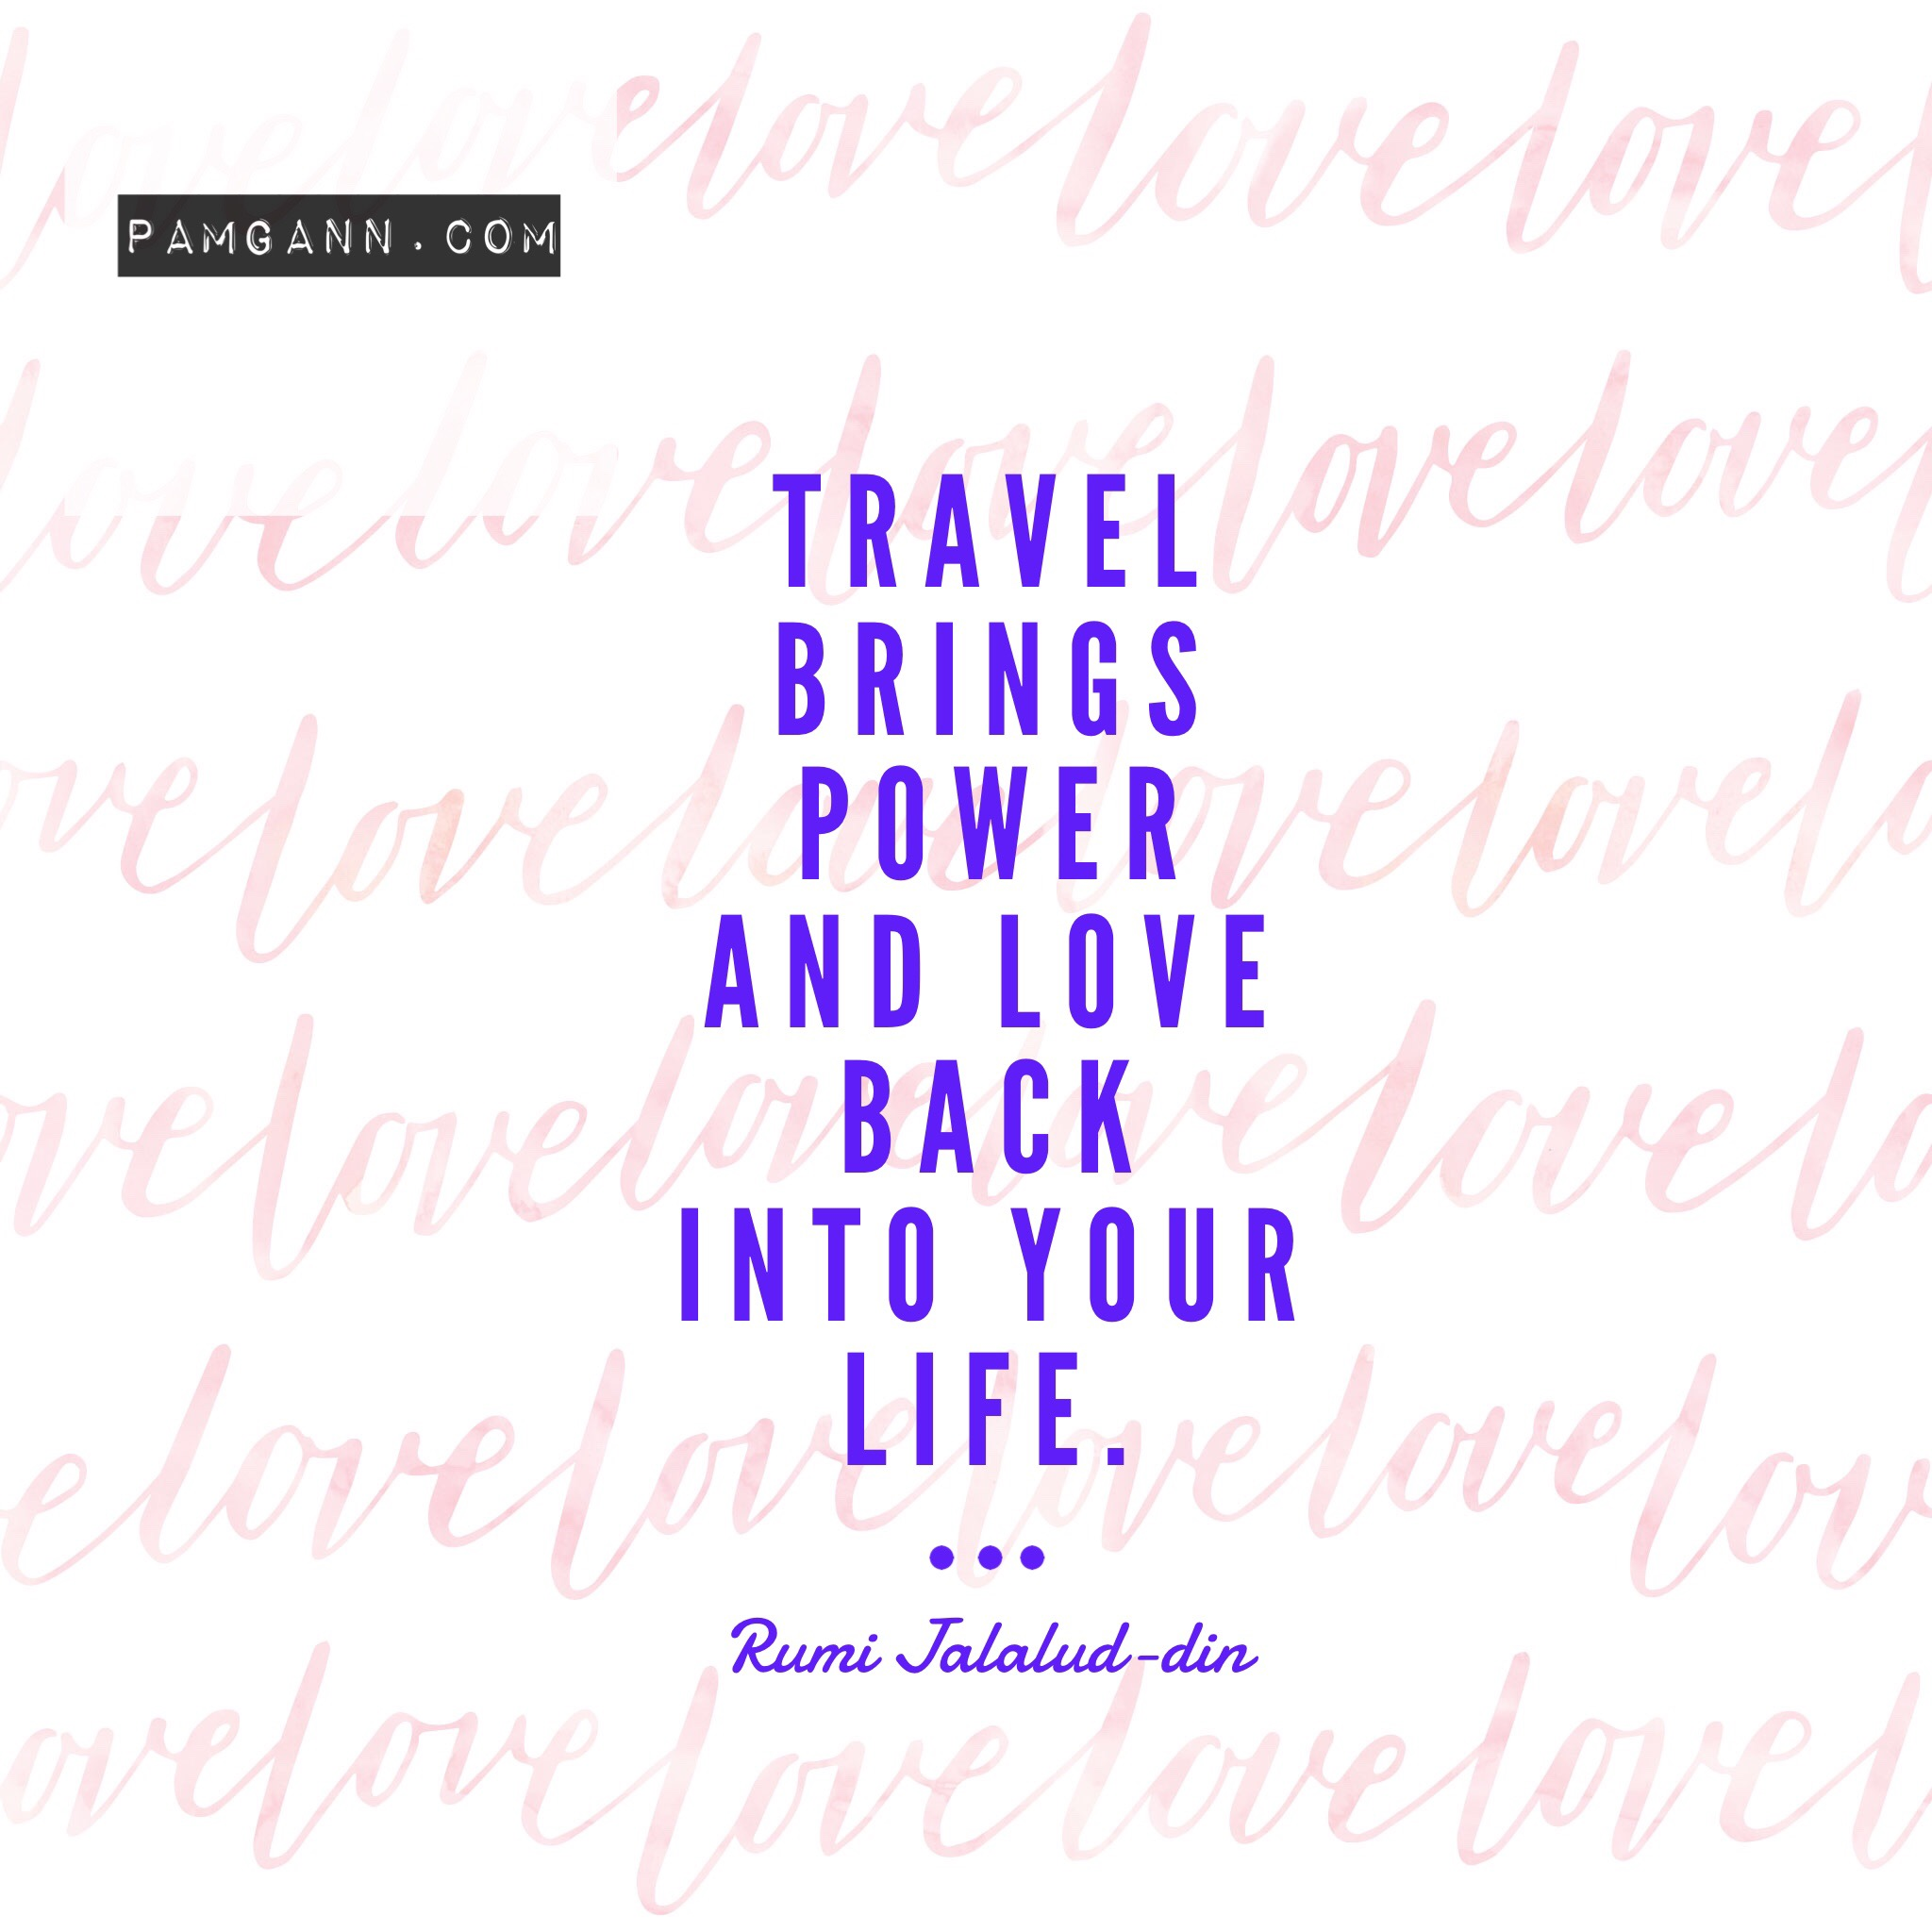 Travel brings power and love travel quote